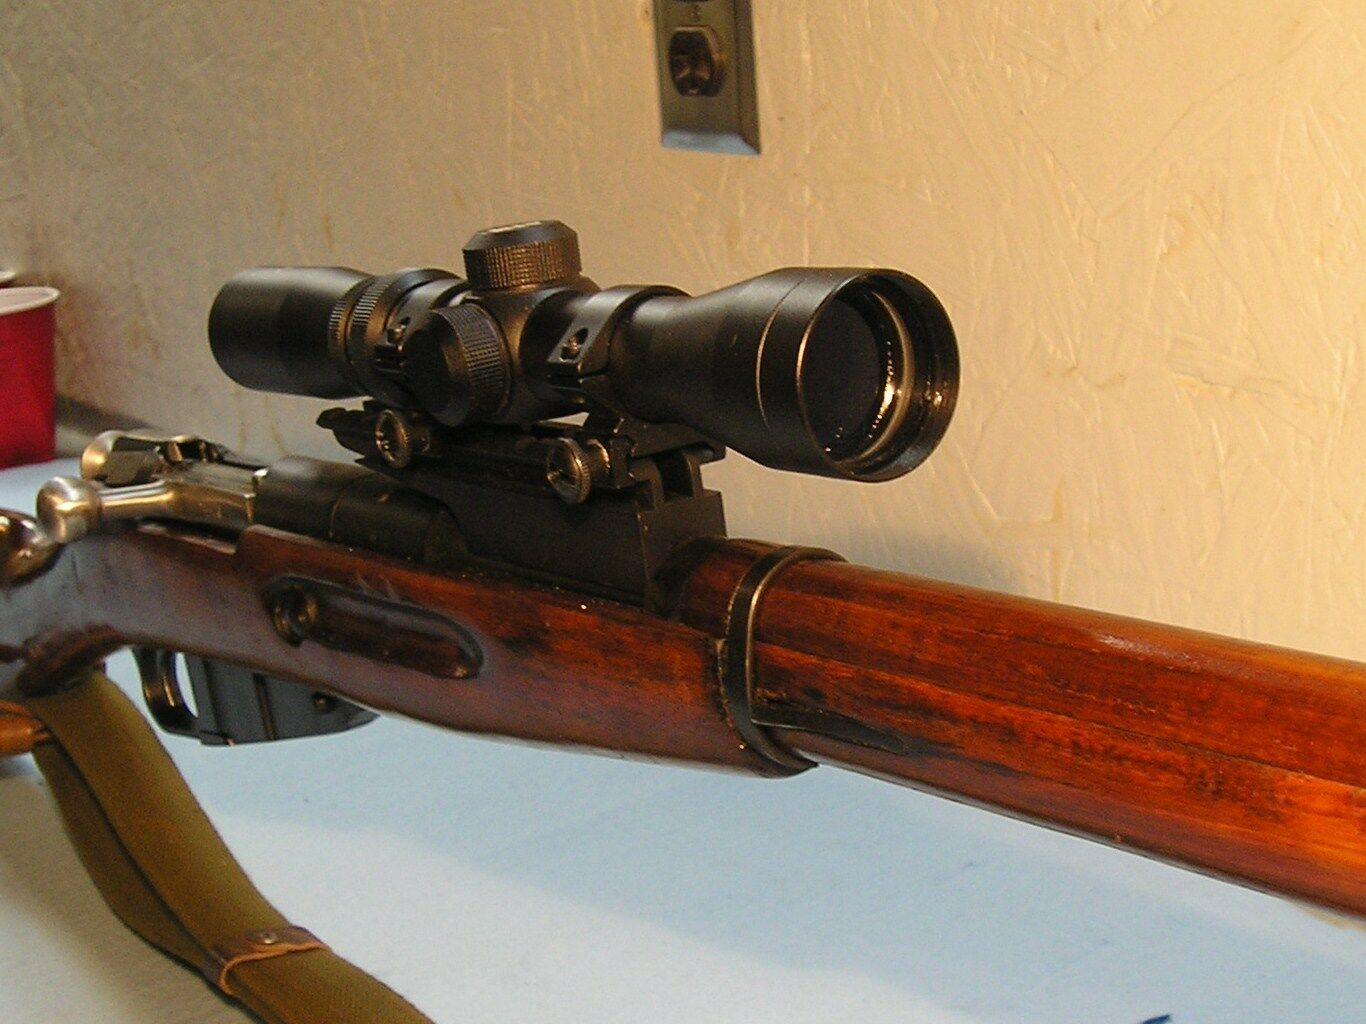 Mosin Nagant Scout Mount For The 91/30, See Through, Rear Sight Machined In Base